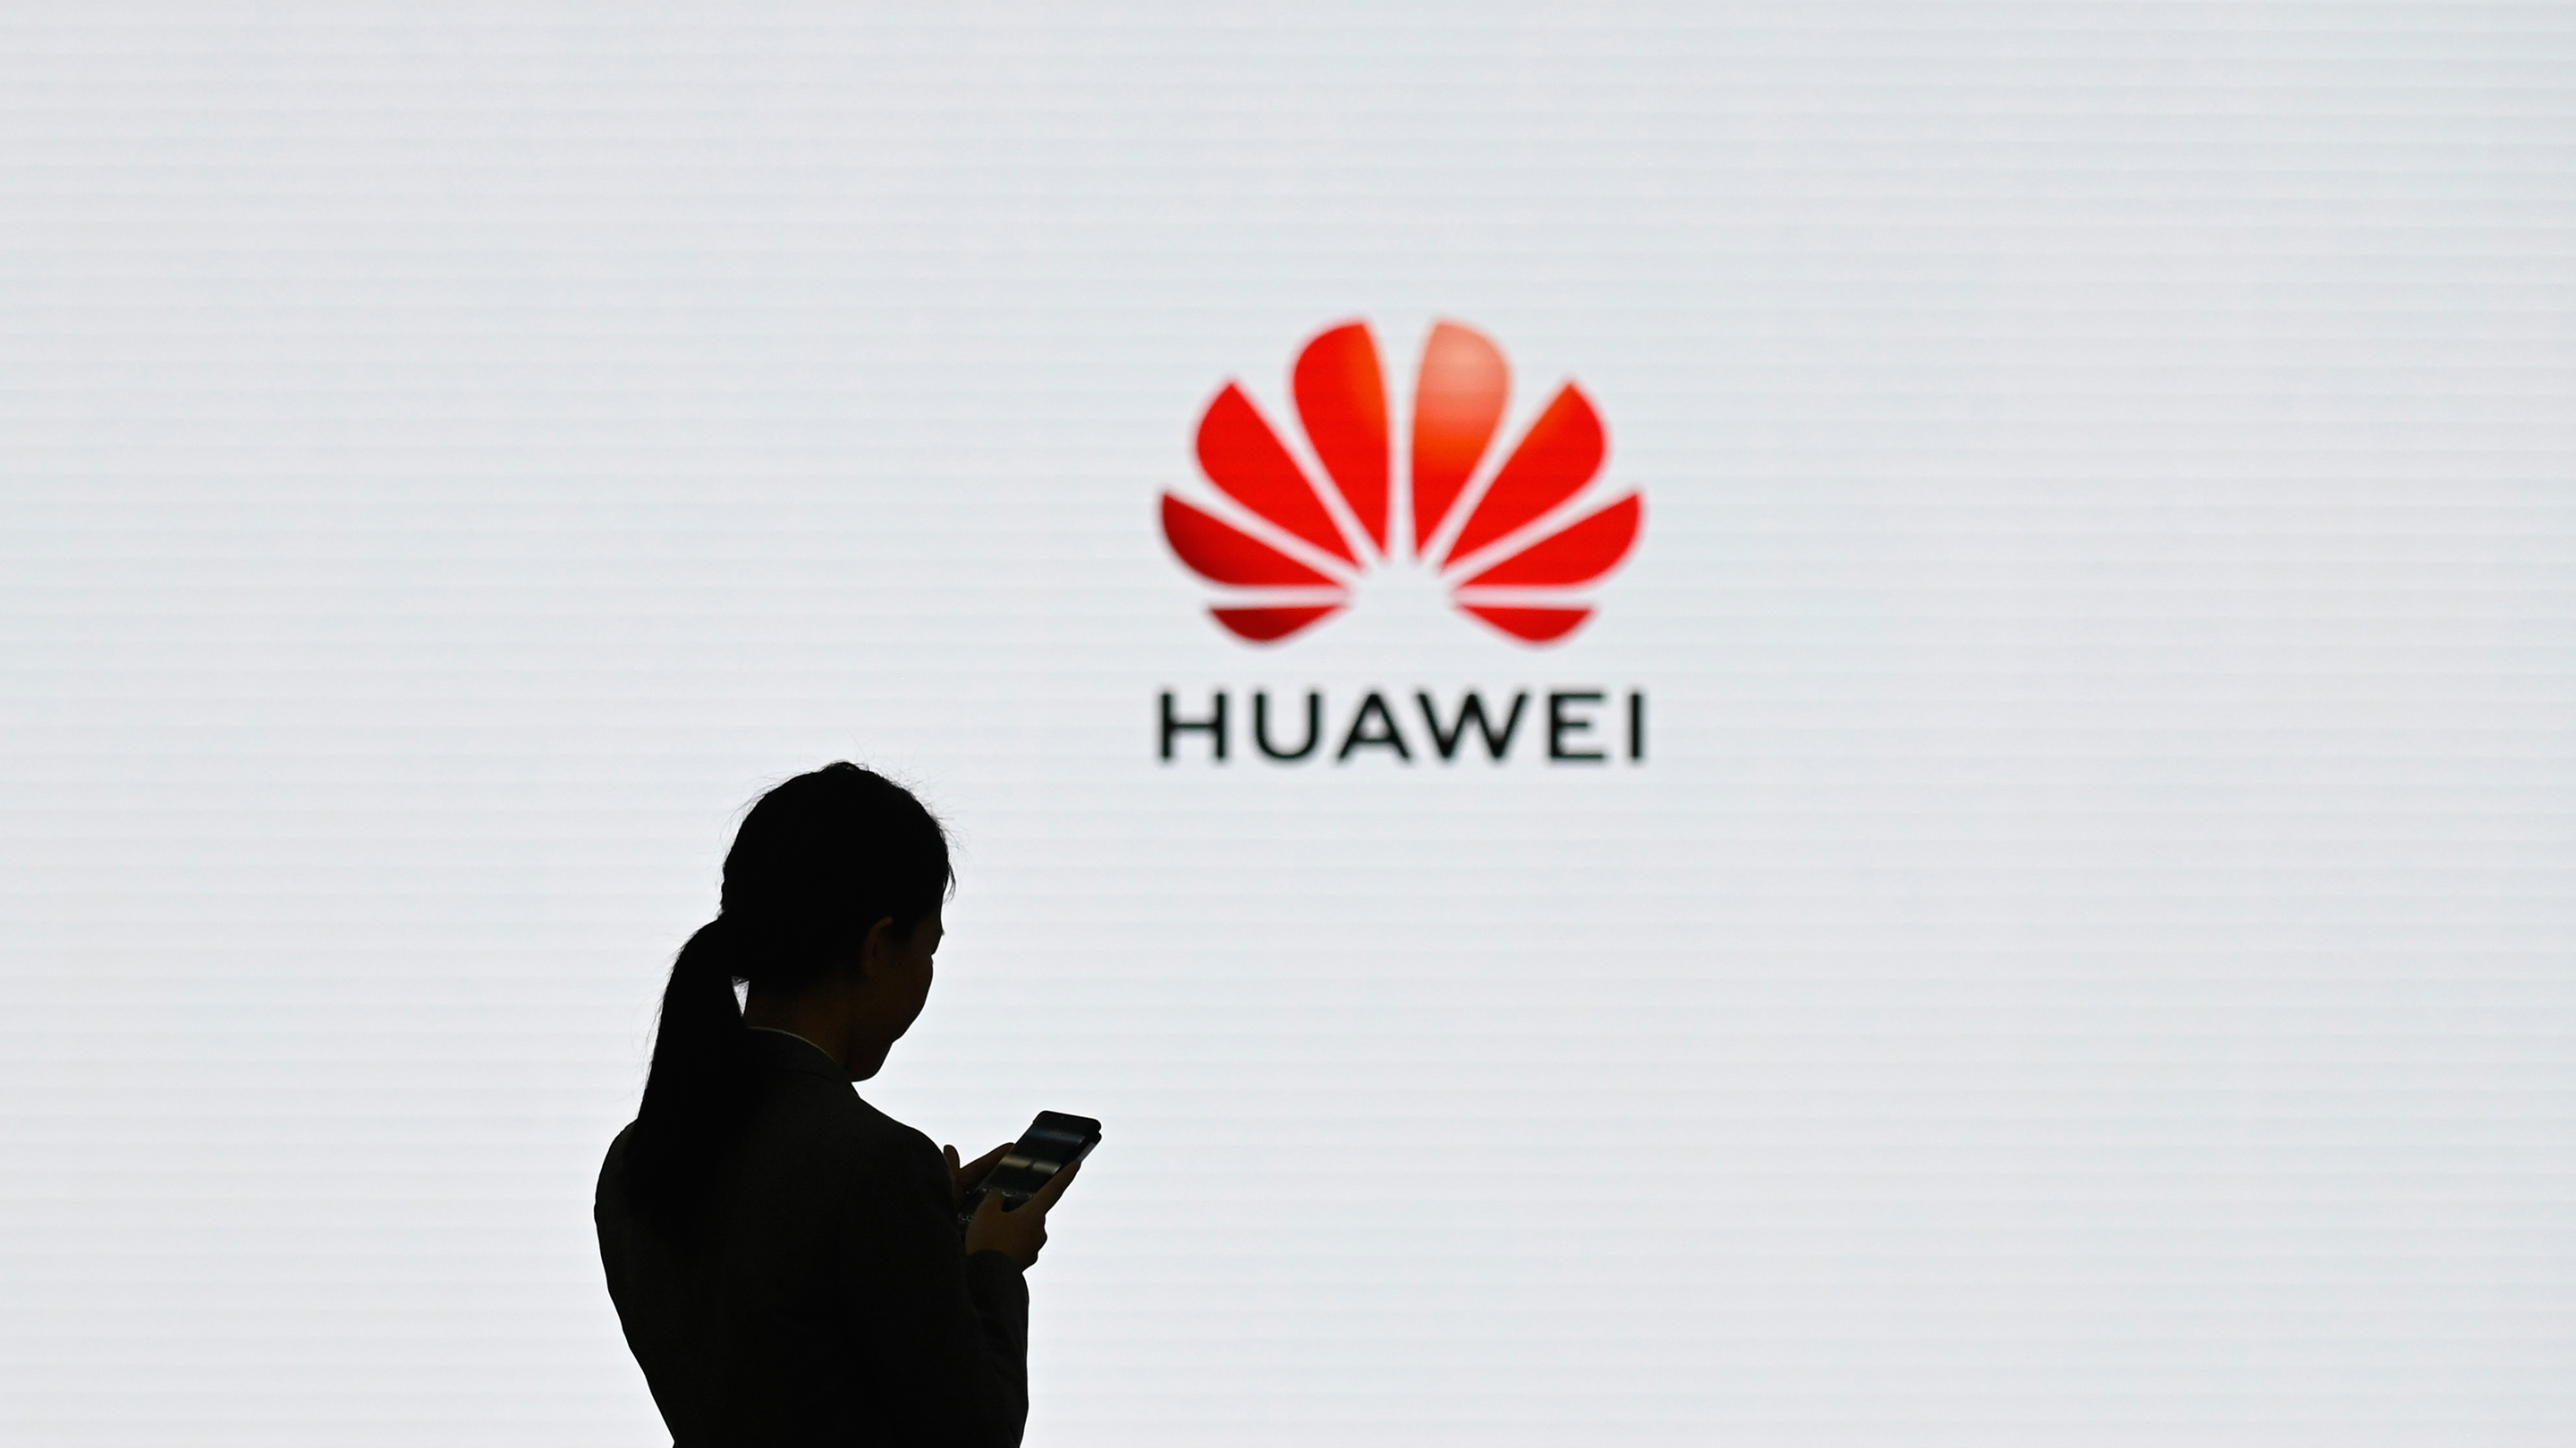 By blacklisting Huawei, the U.S. could be shooting itself in the foot